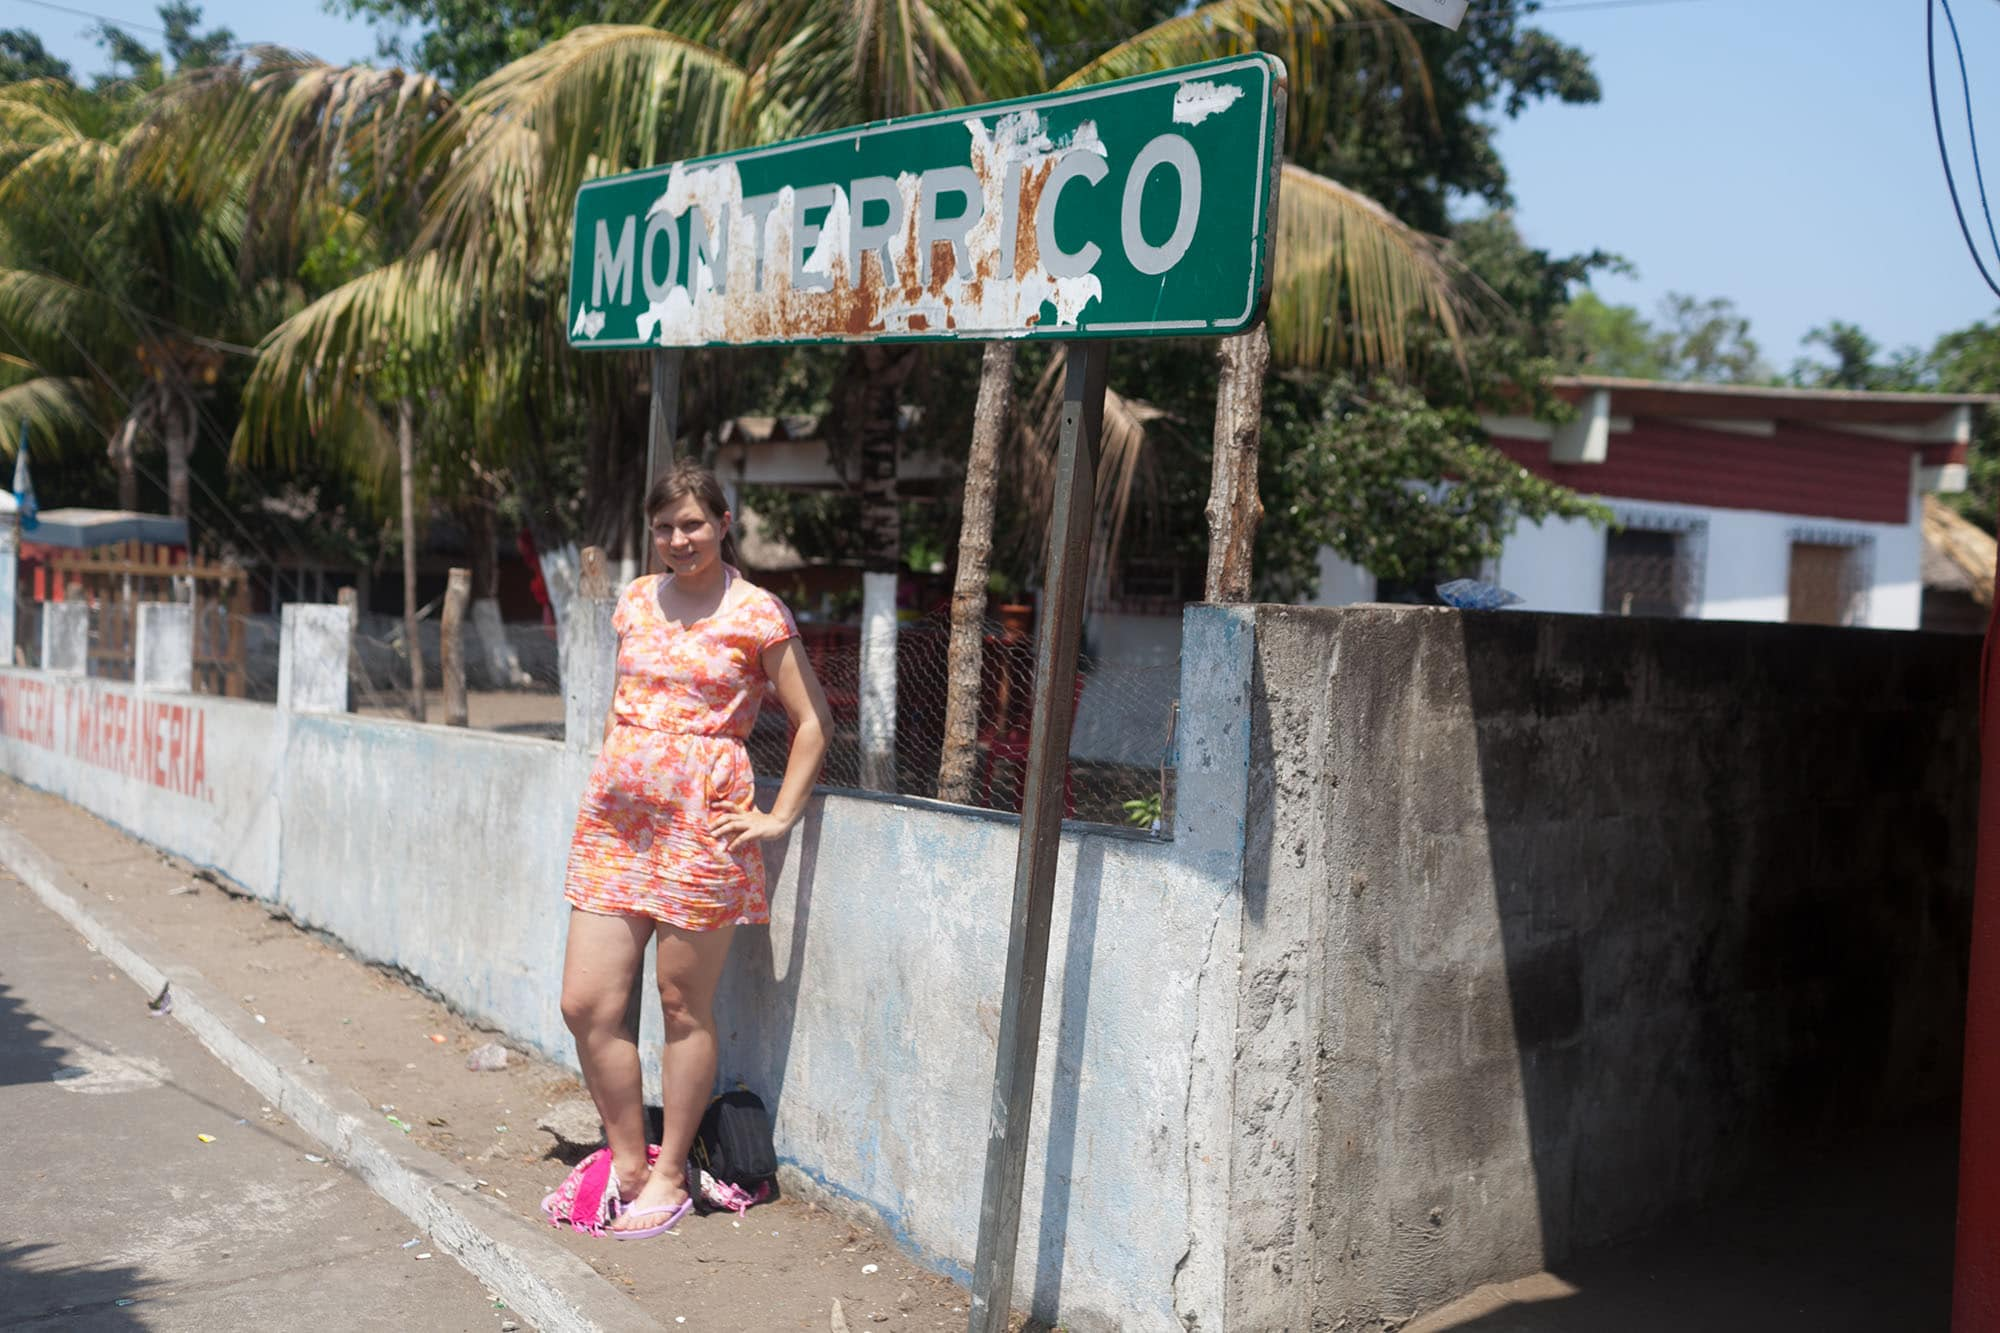 Wandering town at Monterrico Beach in Guatemala